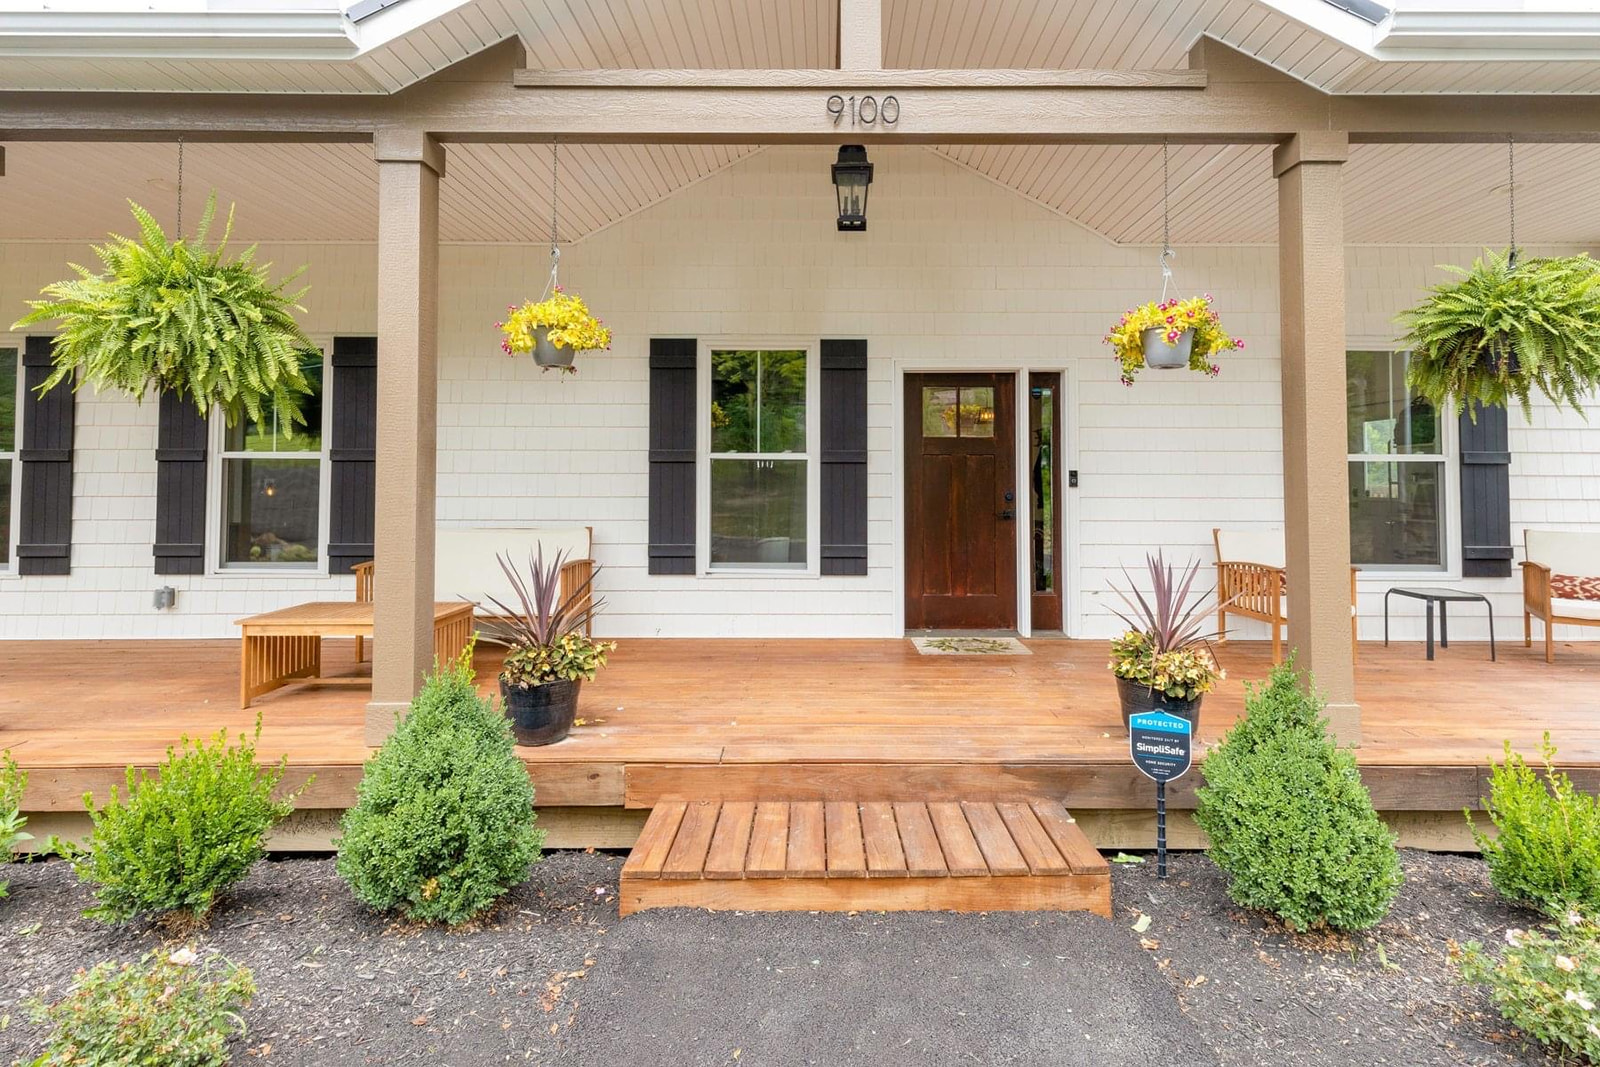 Brand new exterior of home with a farmhouse feel. New home build